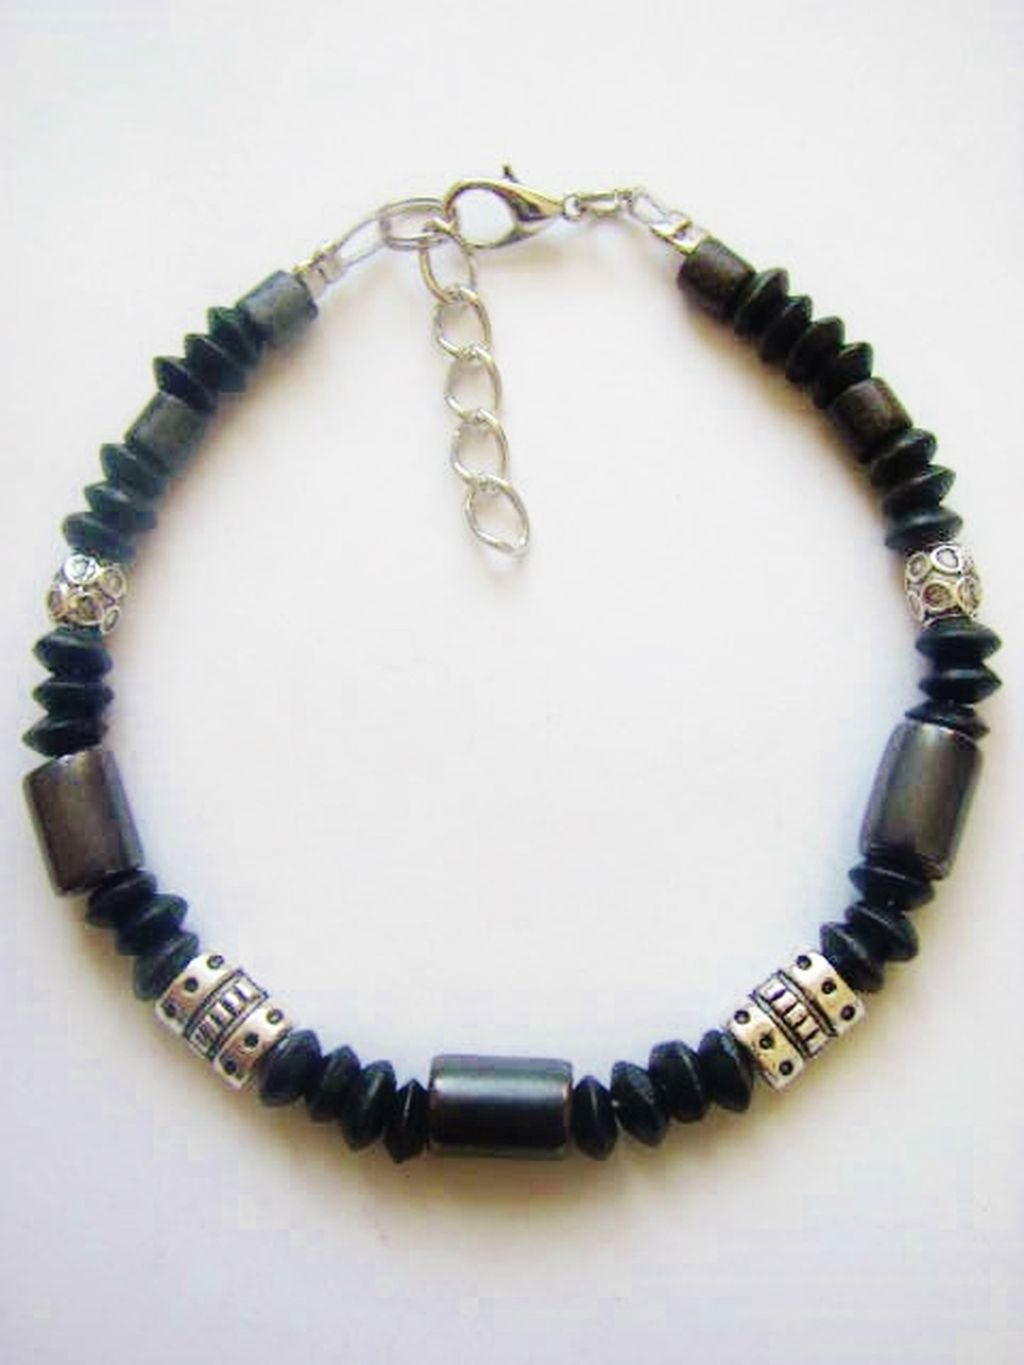 Black Hematite Men's Surfer Style Beaded Bracelet, Beach Choker